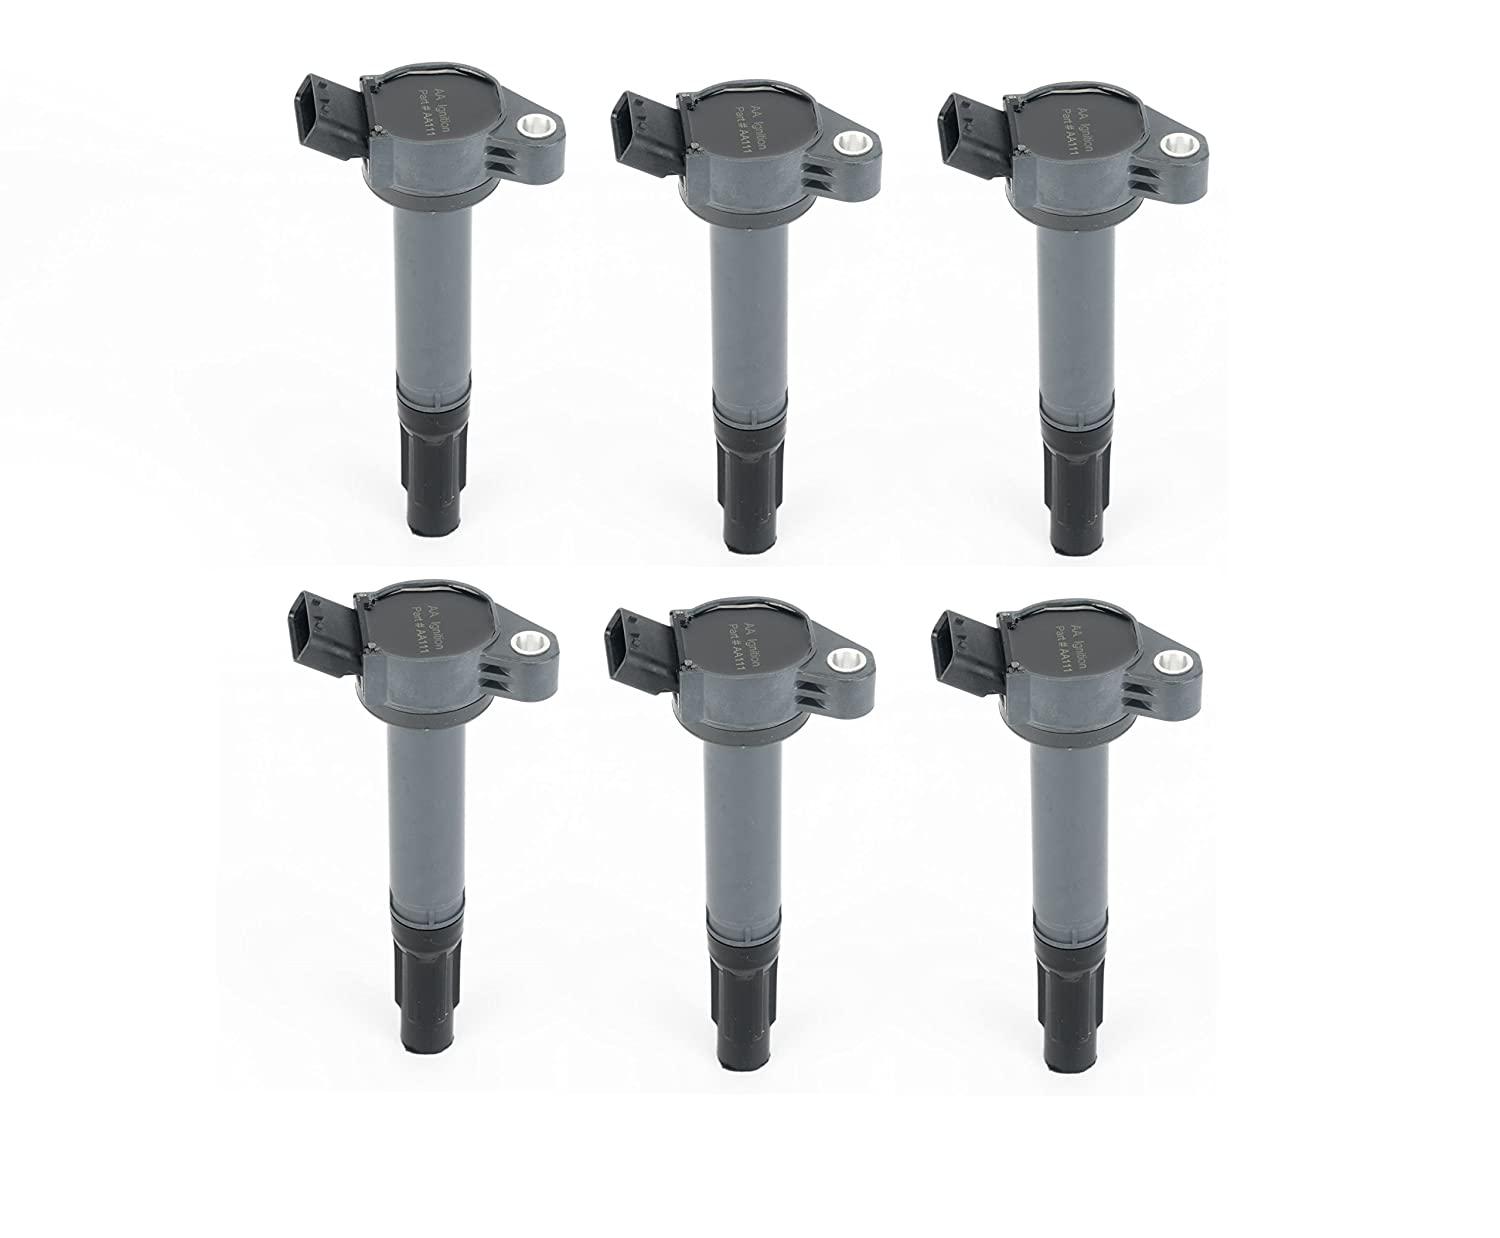 Ignition Coil Set of 6 - 90919-A2007 - Toyota & Lexus 2.7L, 3.5L V6 - Ignition Coil Pack Lexus, Camry V6, Avalon, Sienna, Rav4 and More Image